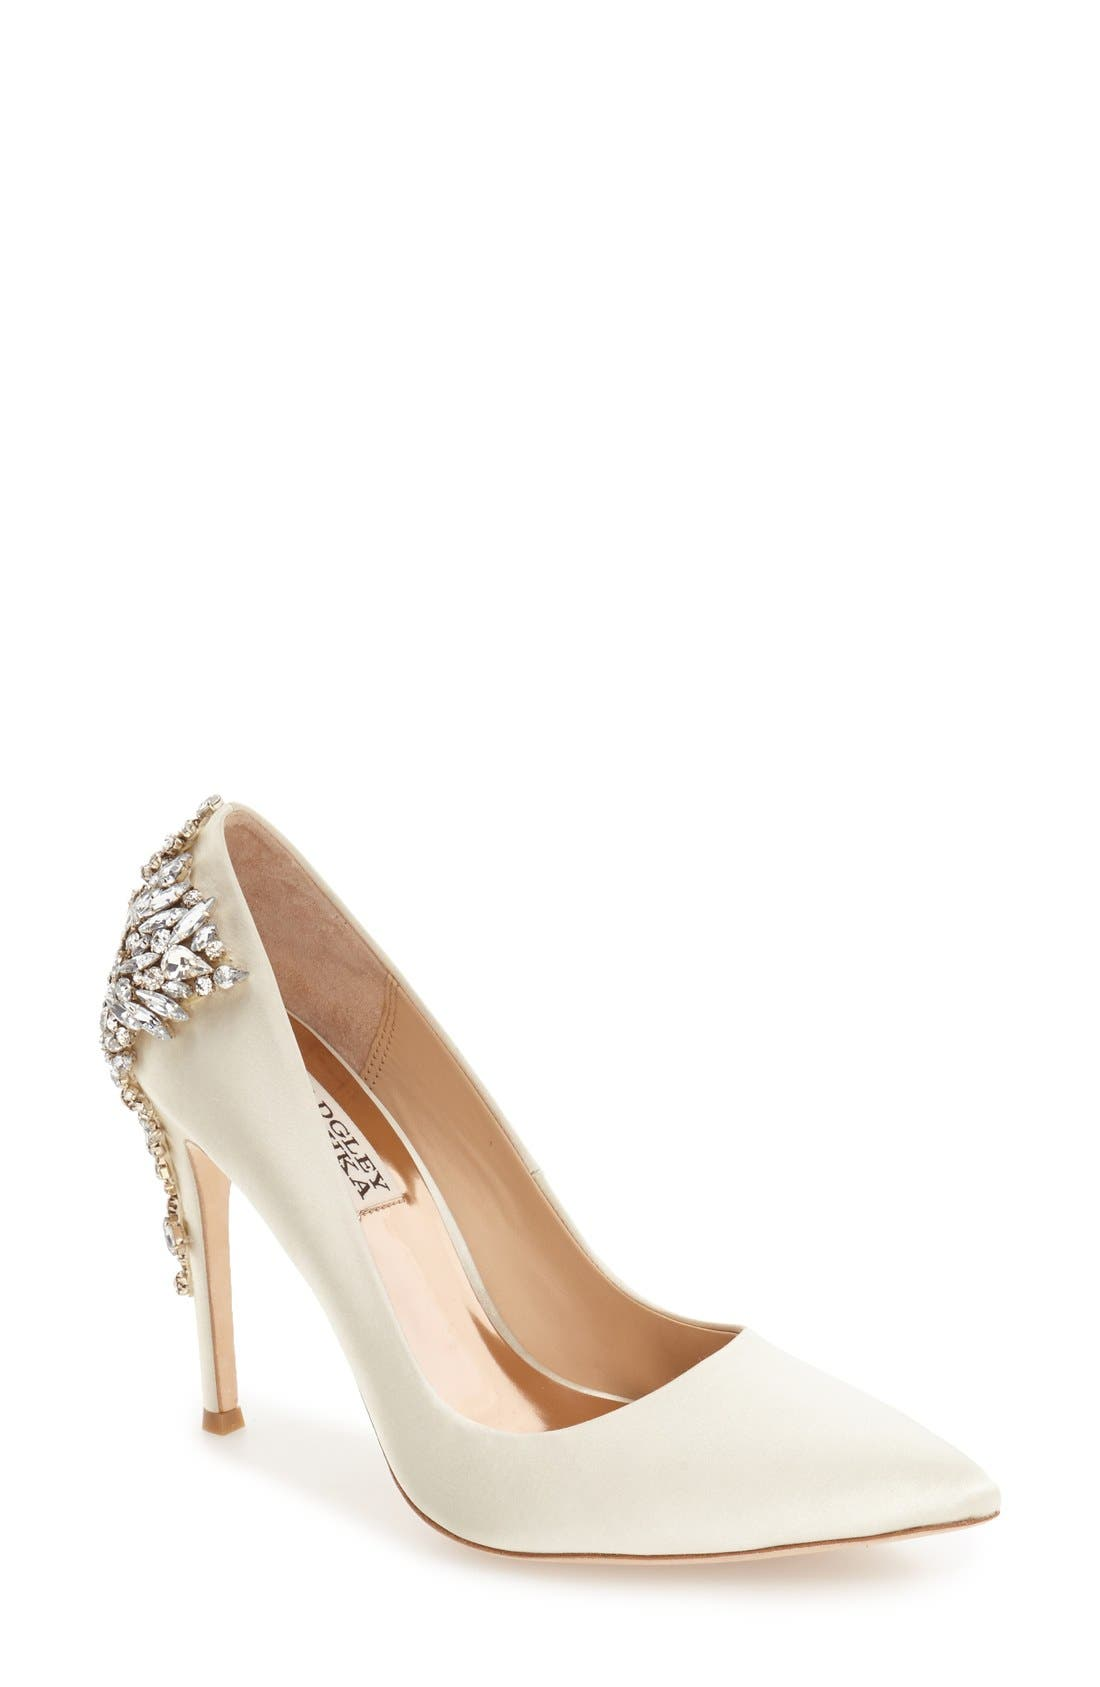 BADGLEY MISCHKA COLLECTION Badgley Mischka 'Gorgeous' Crystal Embellished Pointy Toe Pump, Main, color, IVORY SATIN